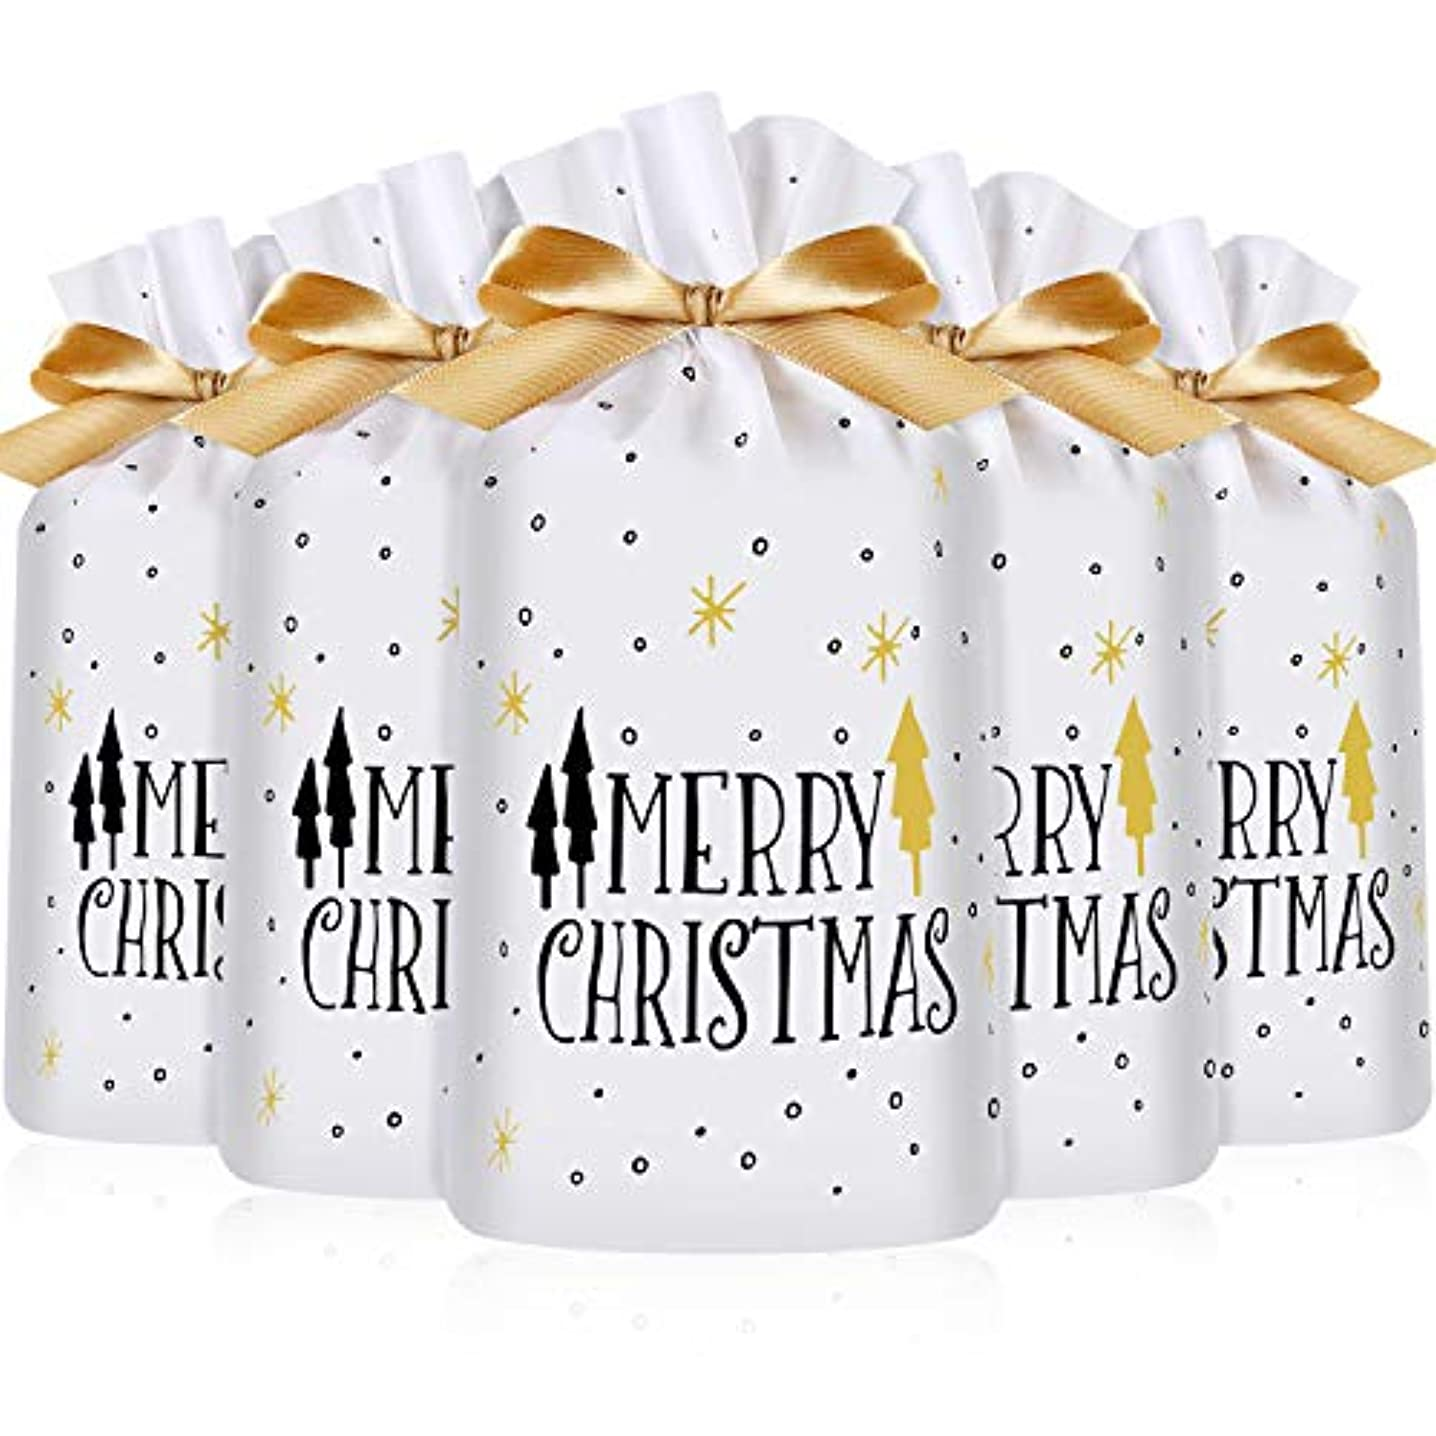 Frienda 30 Packs Treat Bags with Drawstring Candy Bags, Plastic Favor Bag Drawstring Cookie Bags for Christmas Wedding Party Birthday Engagement Holiday Favor